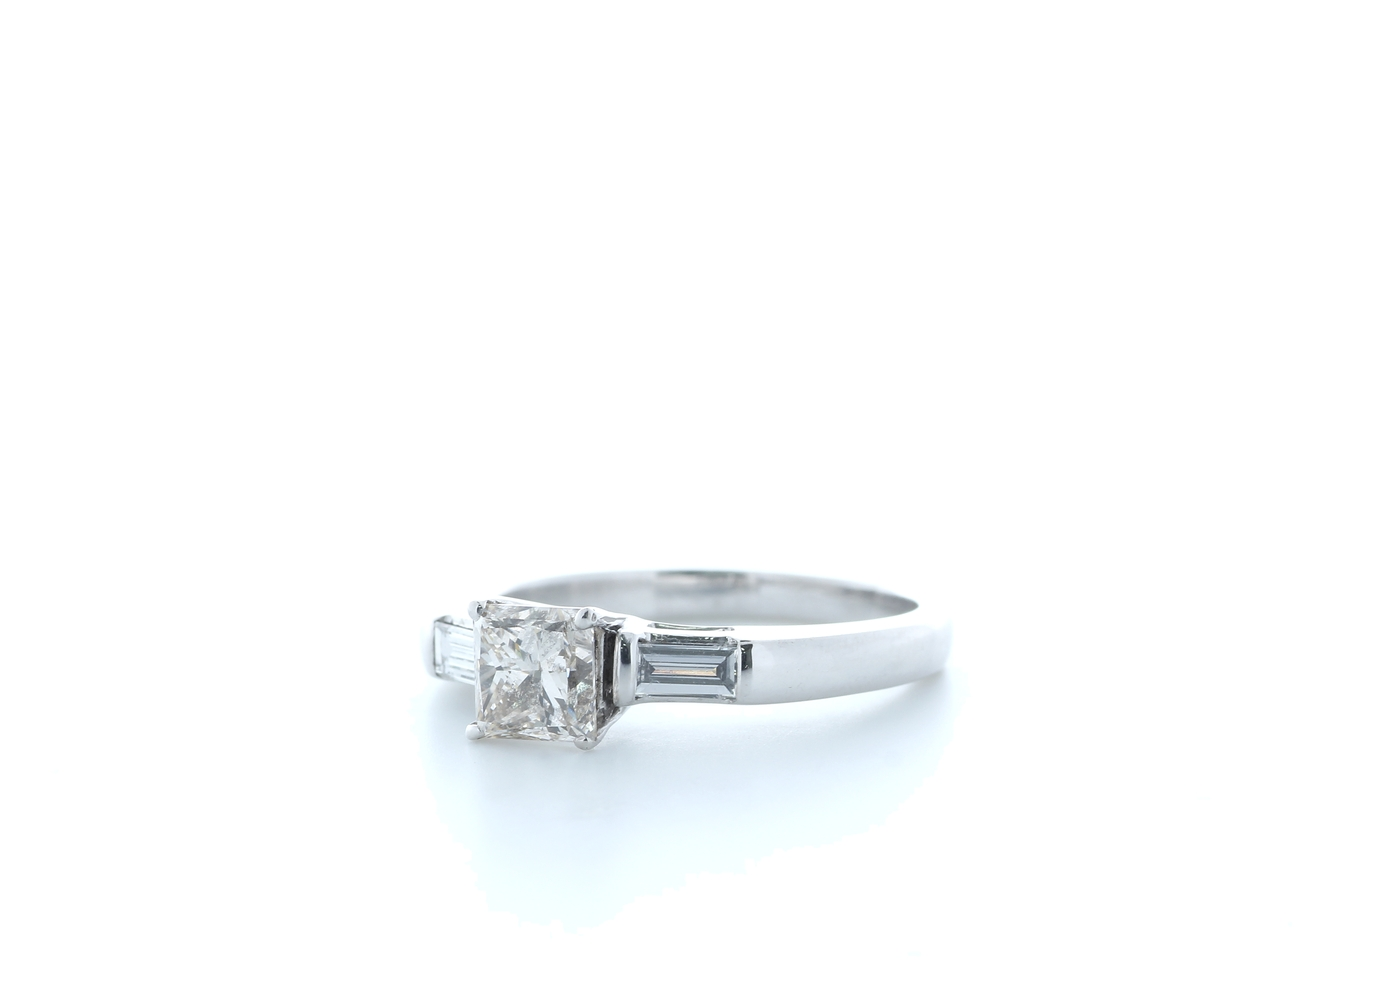 18ct White Gold Princess Cut Diamond Ring 1.20 (1.01) Carats - Image 2 of 5